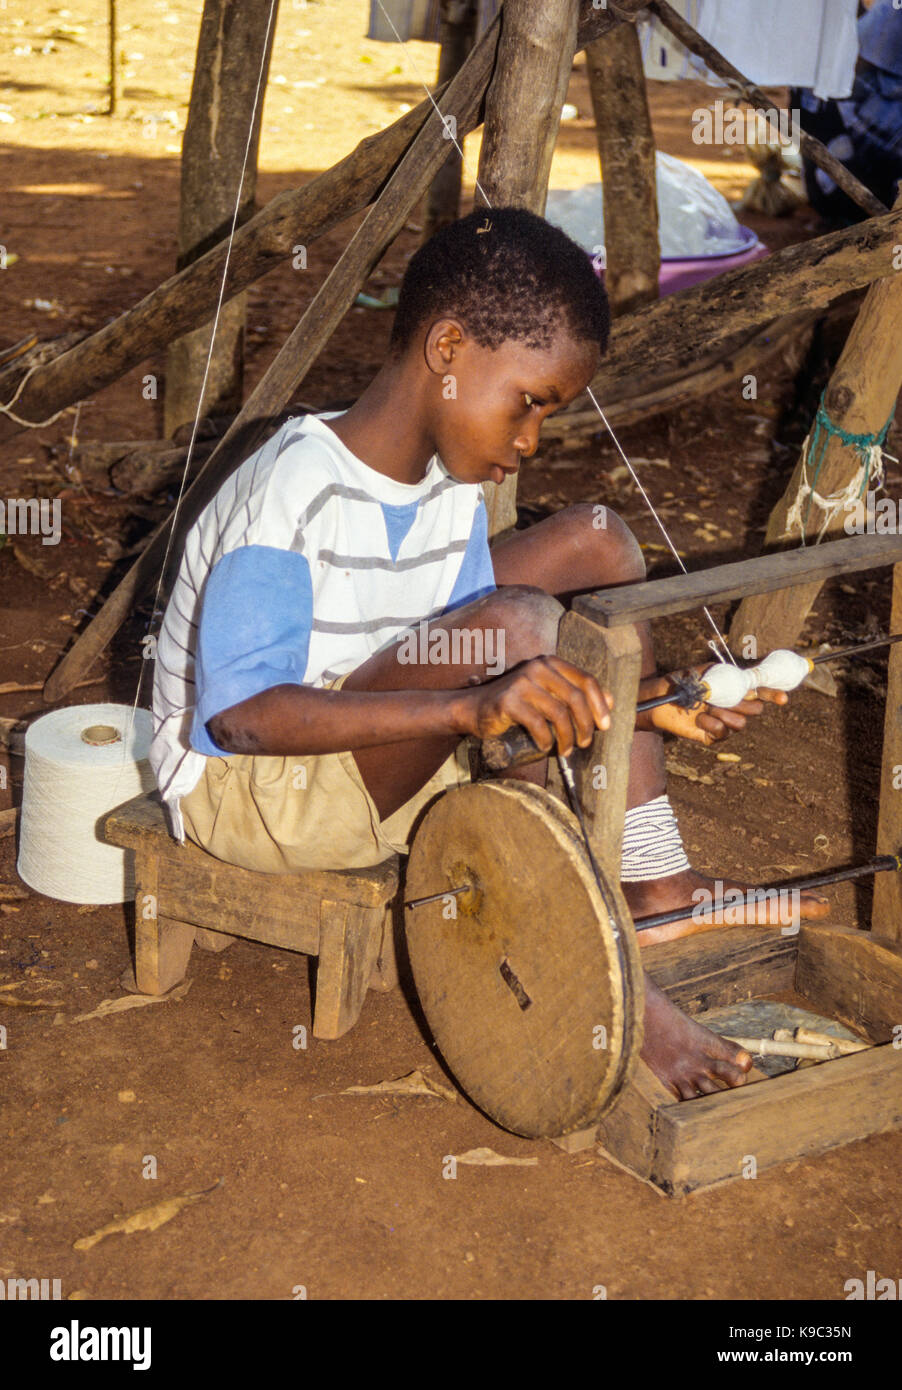 Ivory Coast, Cote d'Ivoire.  Young Senoufo Boy Spinning Thread on a Spindle. - Stock Image